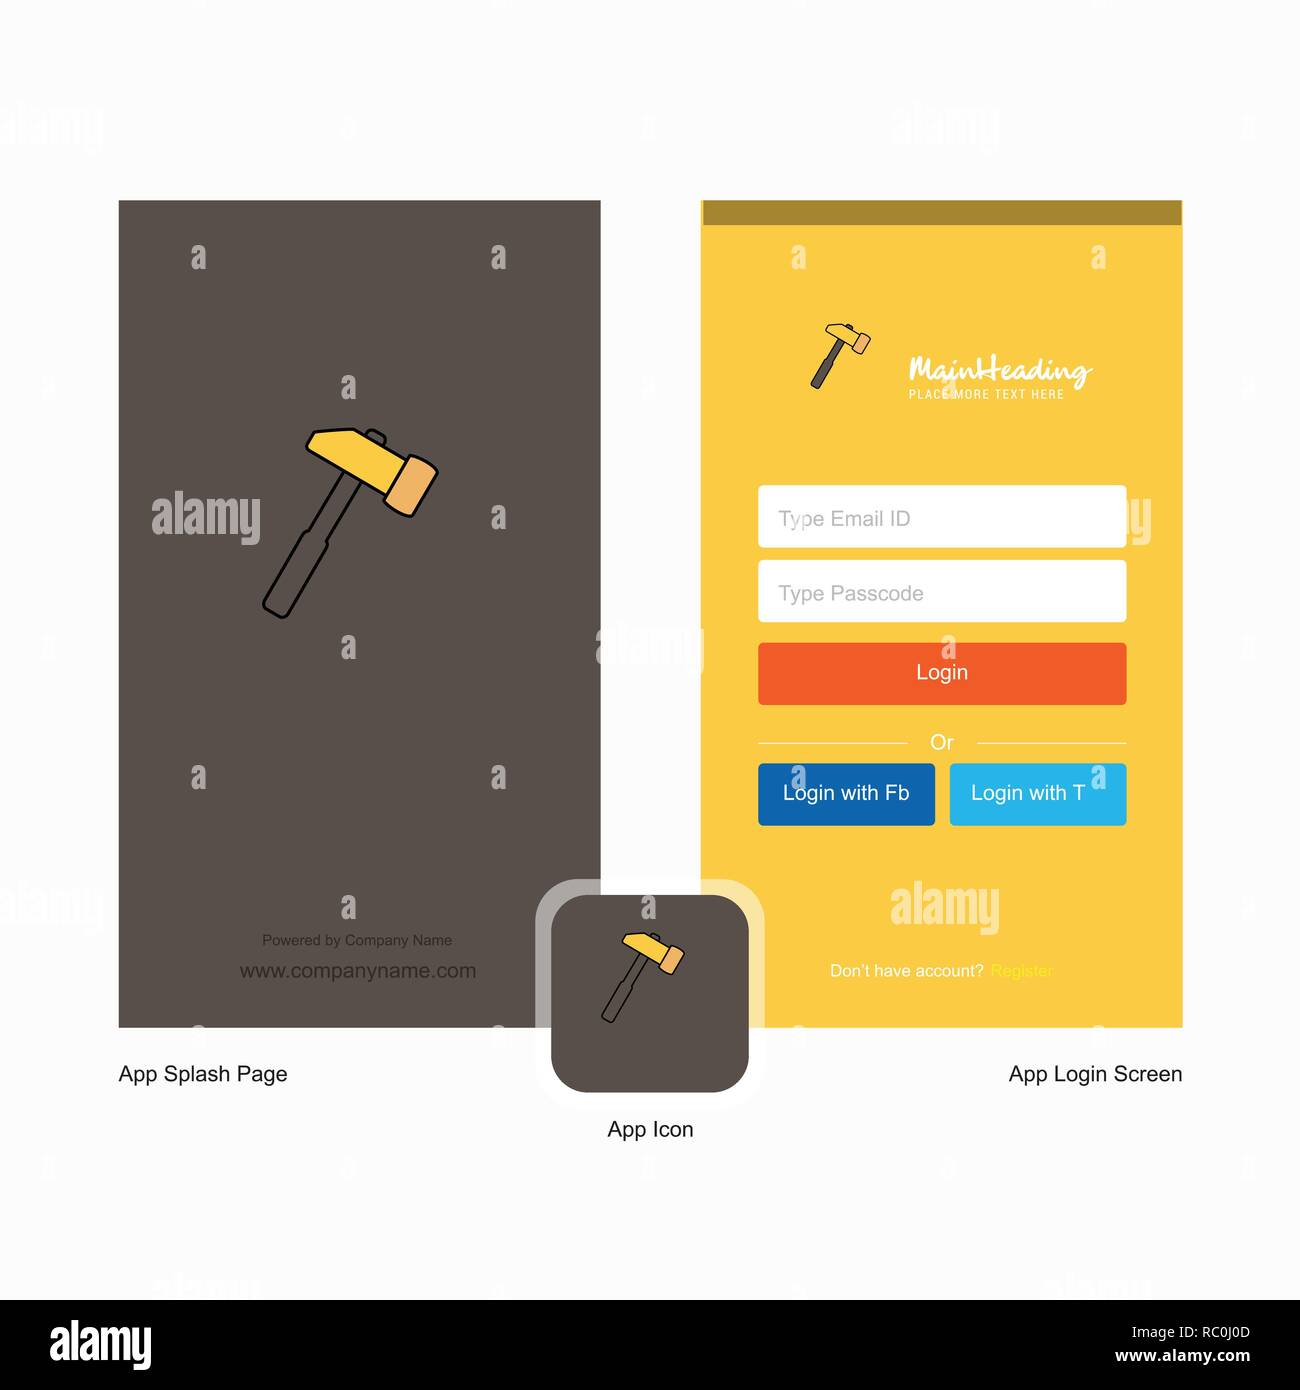 Company Hammer Splash Screen and Login Page design with Logo